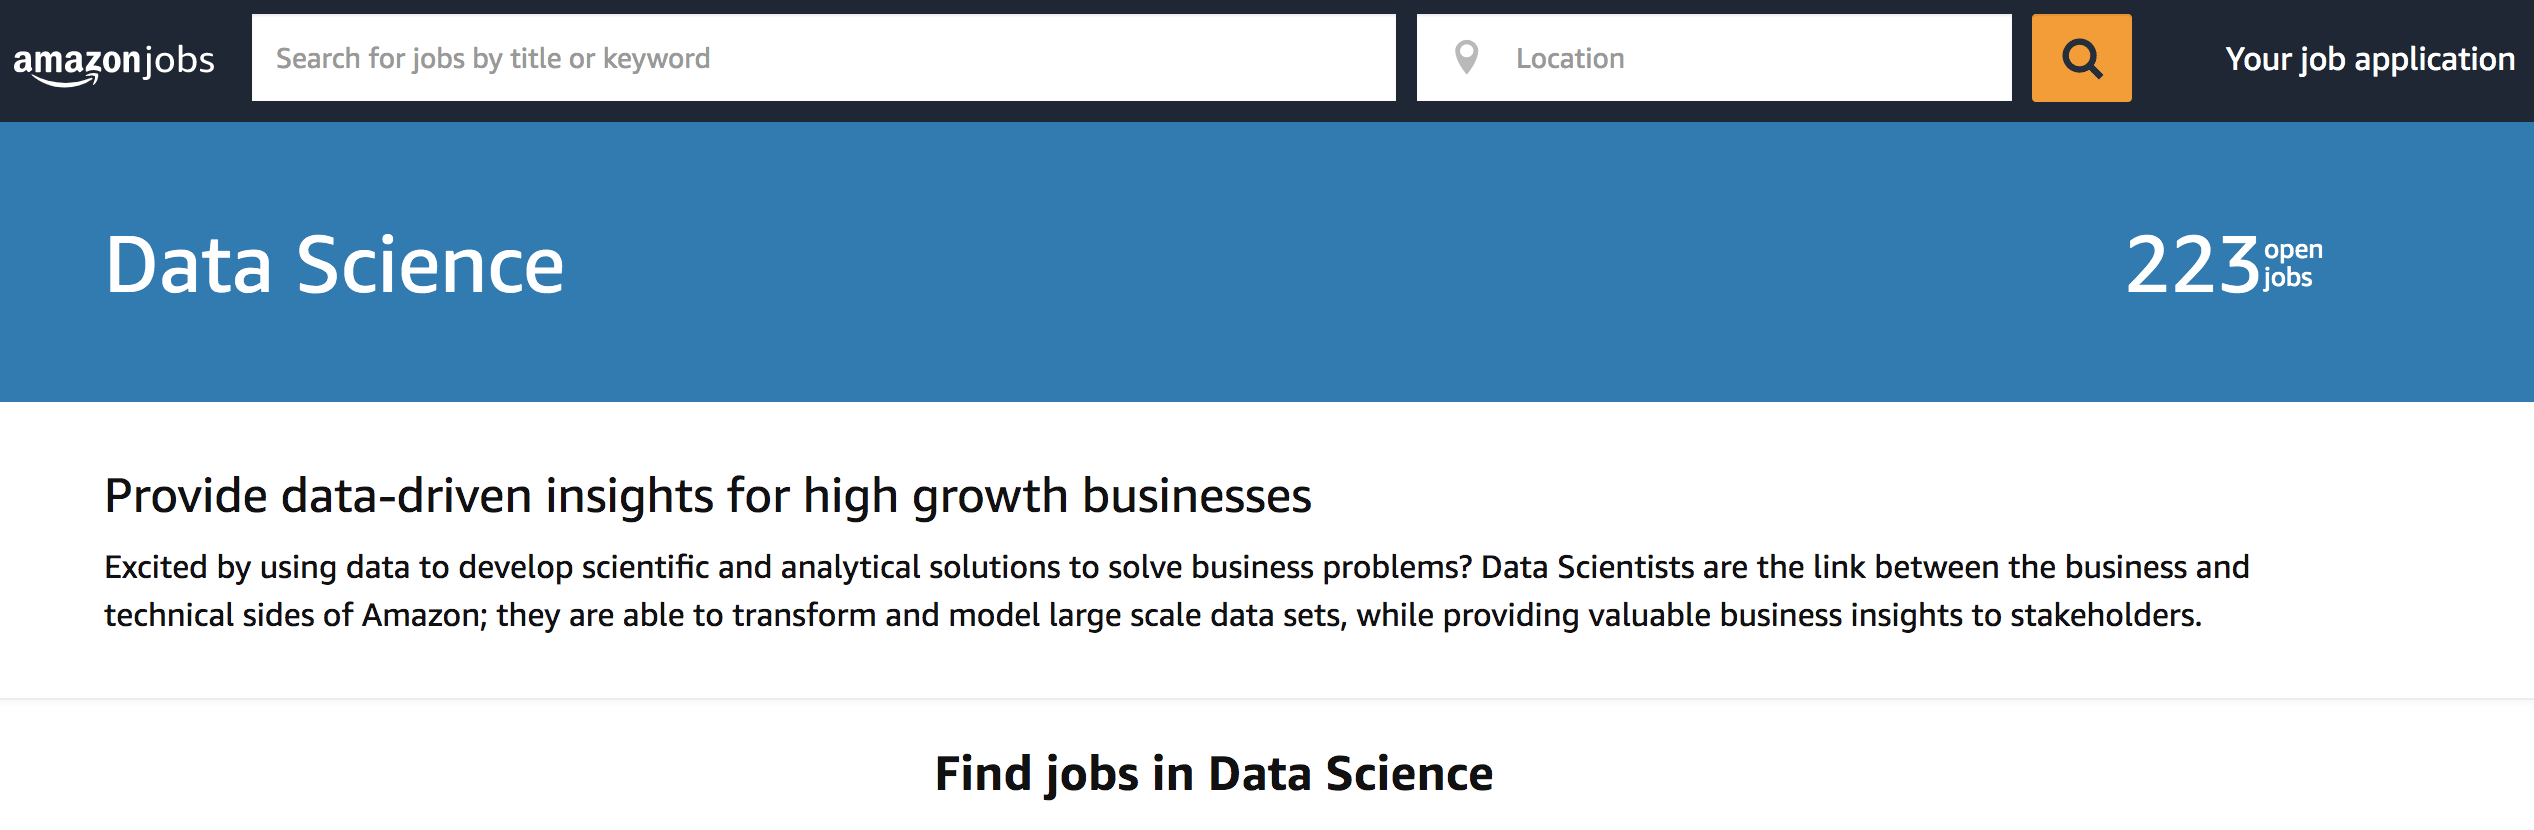 Amazon data science jobs